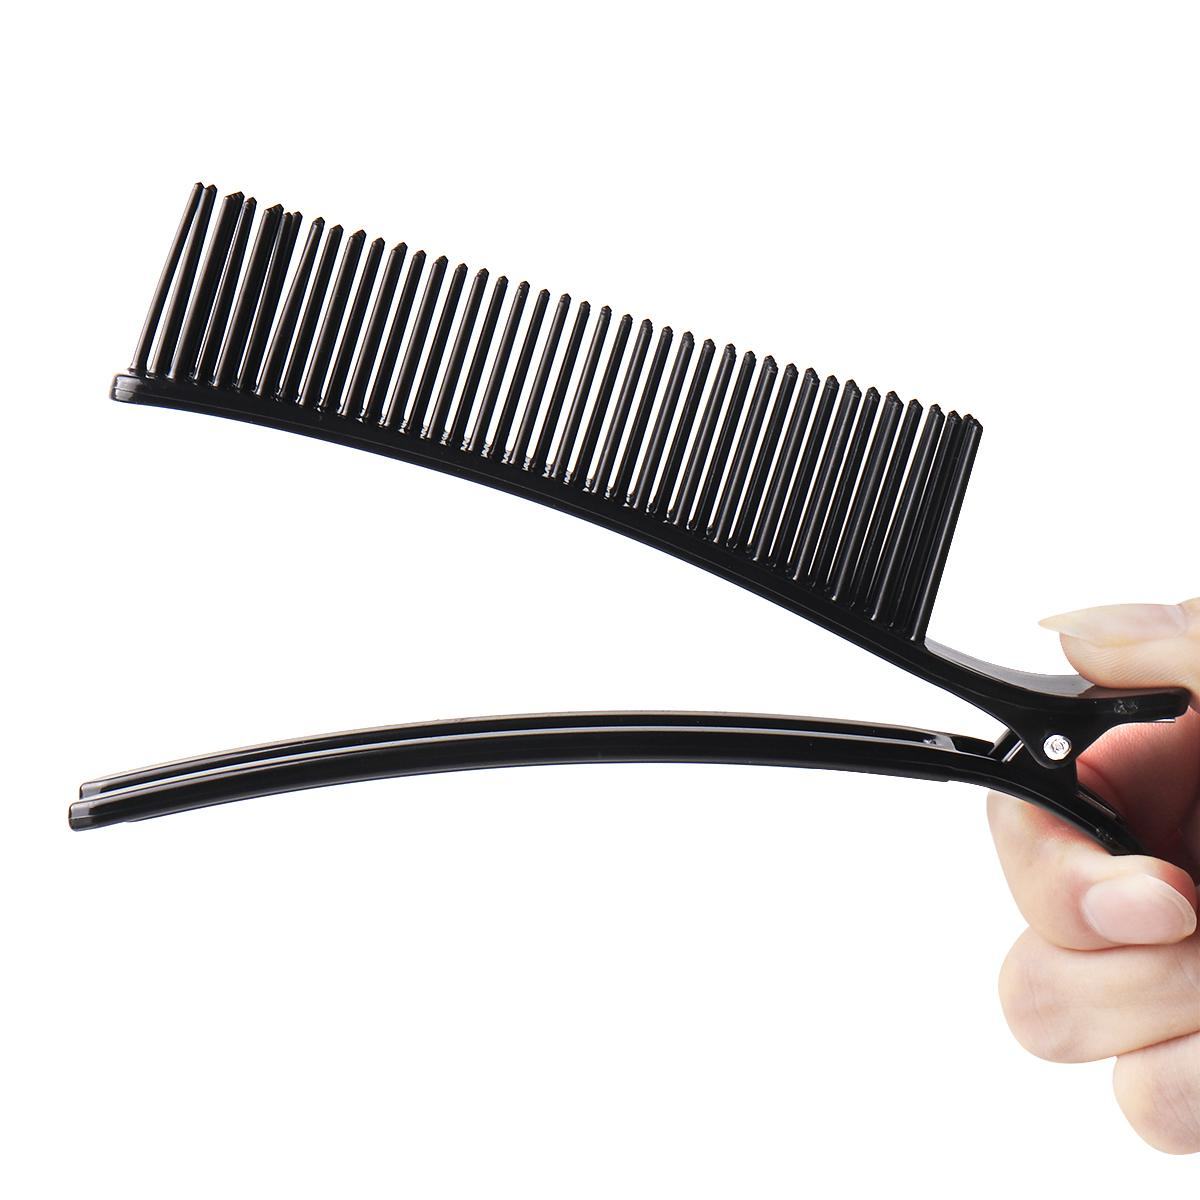 Professional Hair Clip Clamps Hairdressing Sectioning Cutting Comb Salon  Drying Perm Dyeing Hairstyling Tool Wet Brush Hair Brush Wet Brush Hair  From